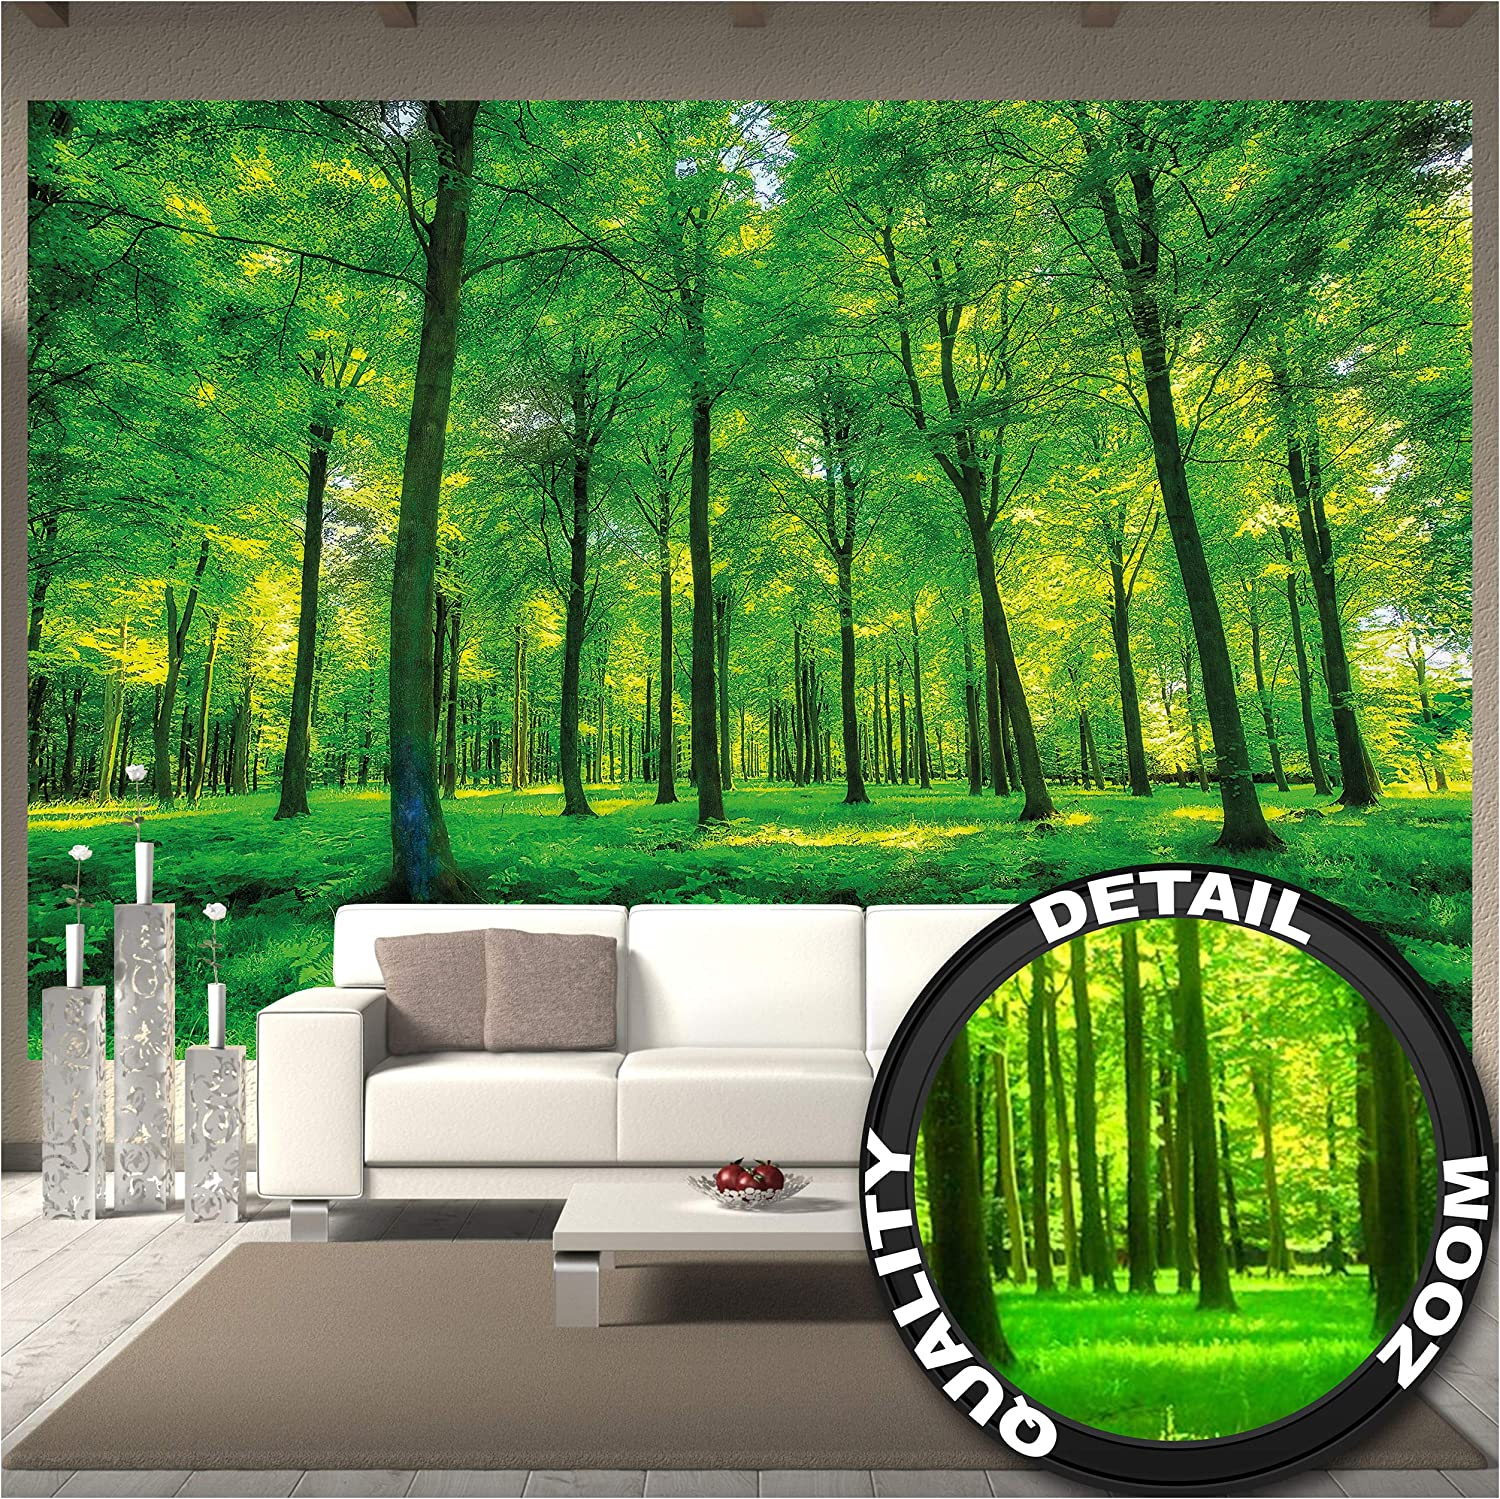 Amazon Com Great Art Large Photo Wallpaper Summer Trees Picture Decoration Landscape Forest Glade Relaxation Sunbeams Park Plants Flora Ferns Image Decor Wall Mural 132 3x93 7in 336x238cm Home Improvement